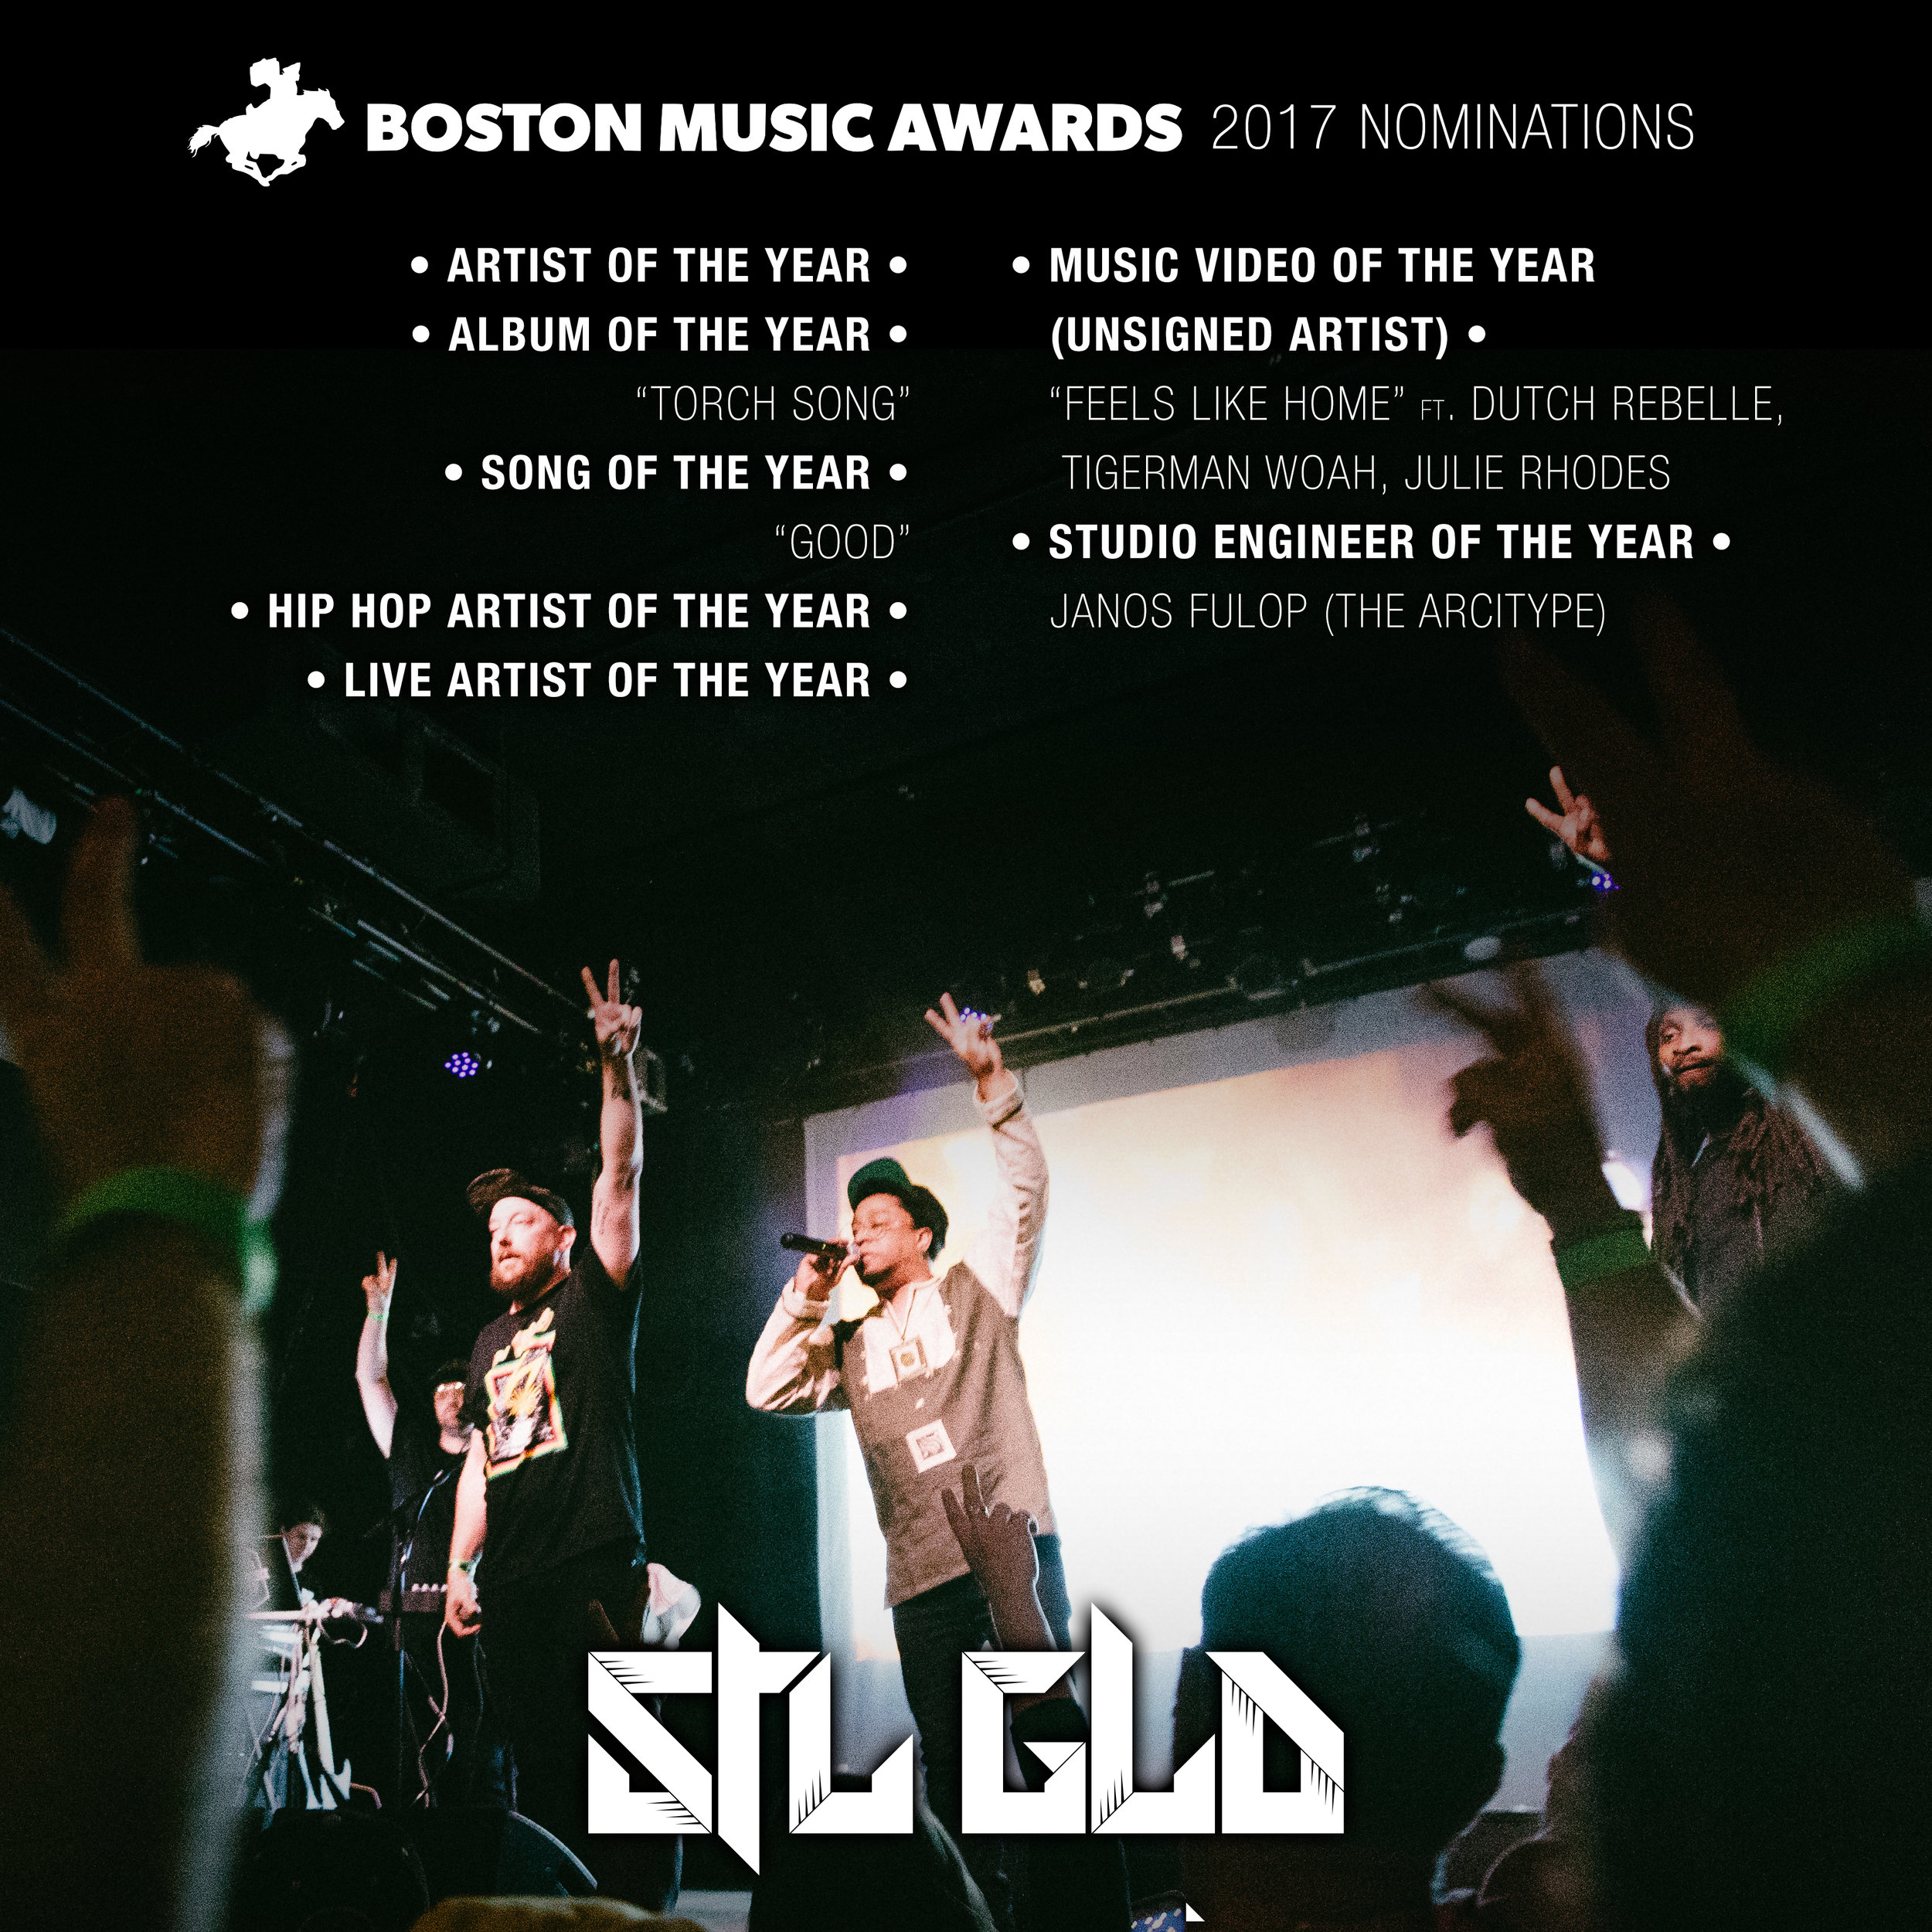 2017 bma nominations-stlgld (1).JPG